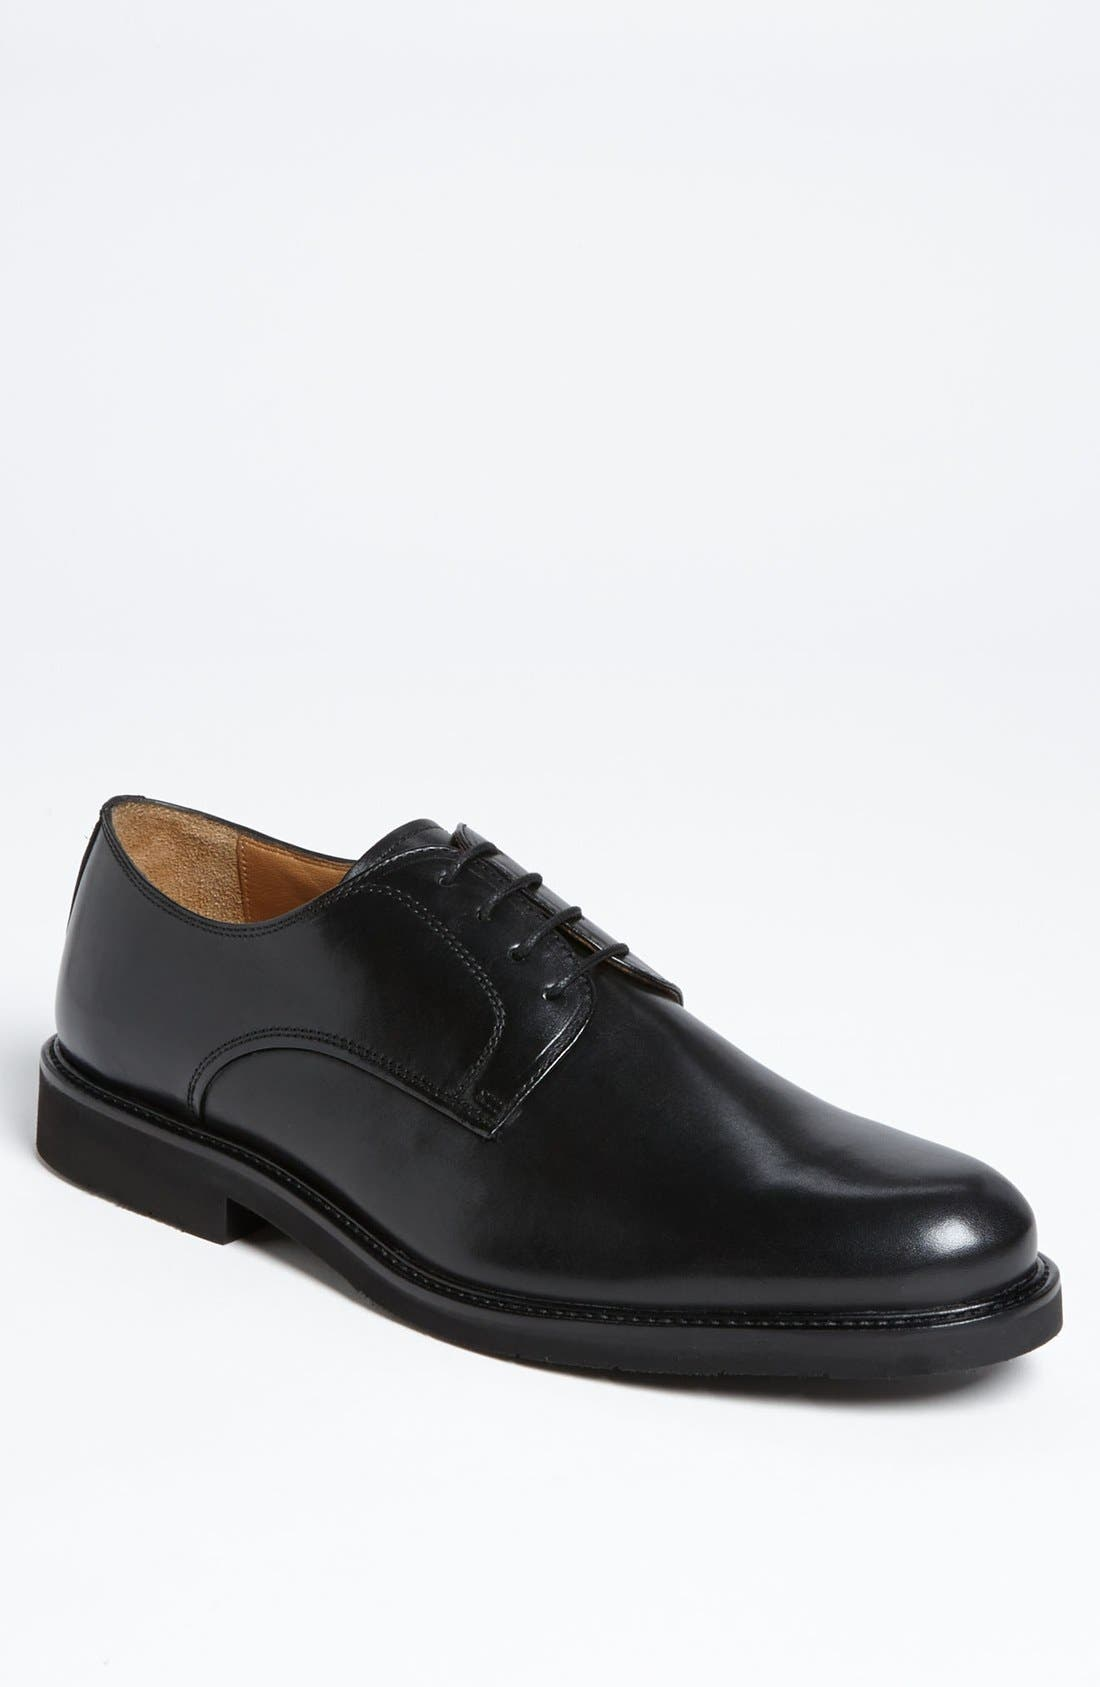 Main Image - Florsheim 'Gallo' Plain Toe Derby